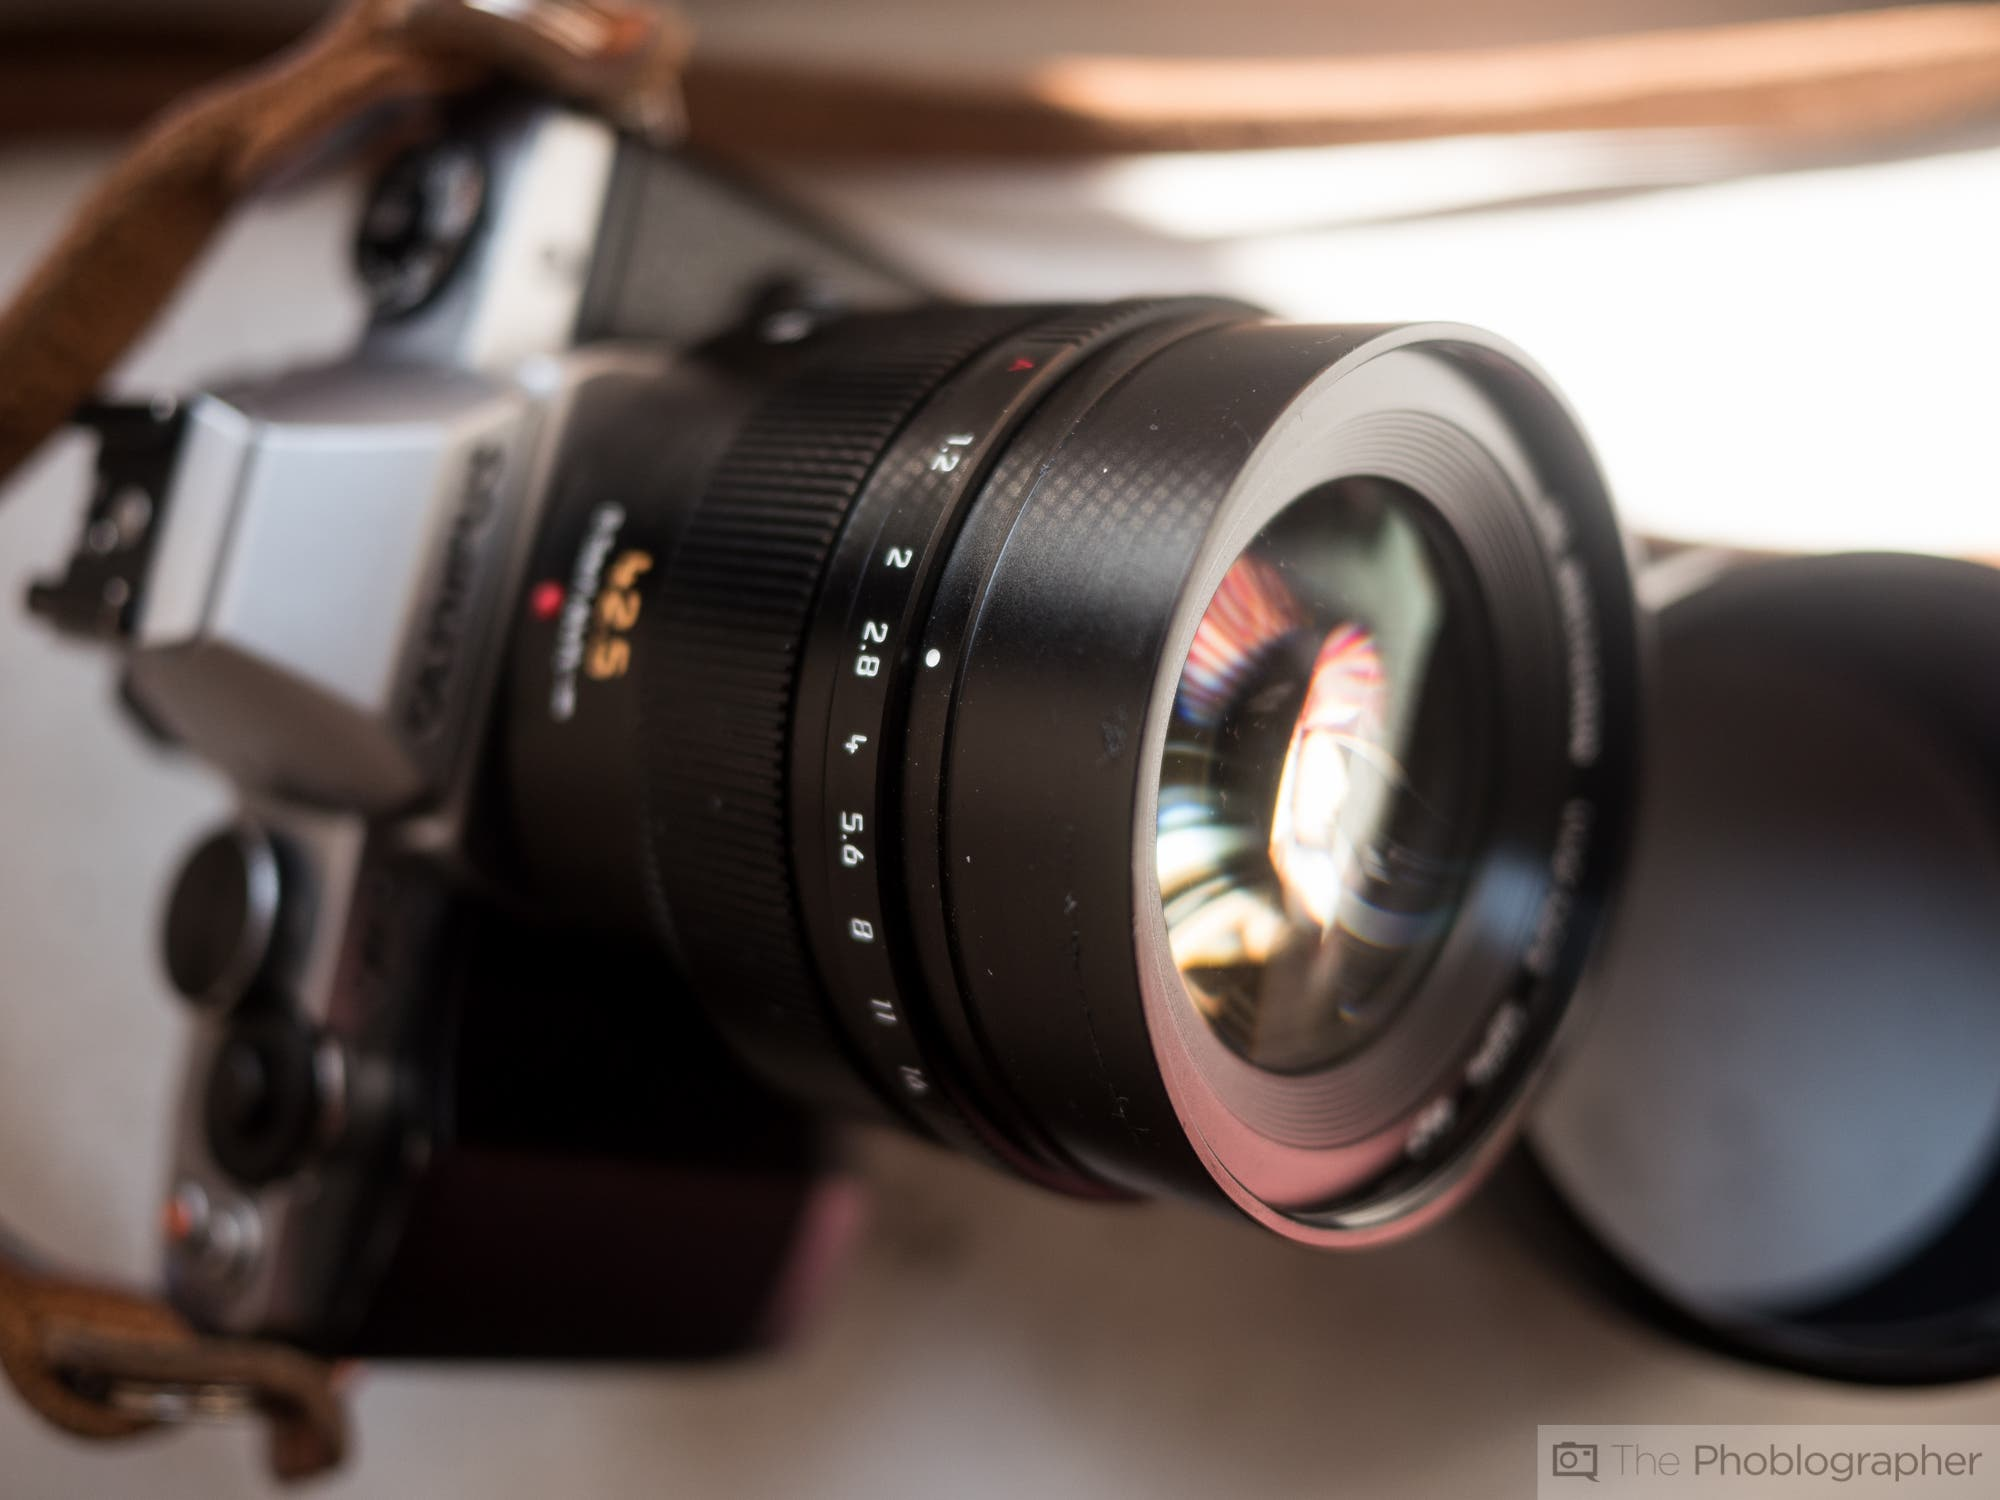 6 Portrait Lenses For M4/3 Cameras That Will Make Your Images Pop